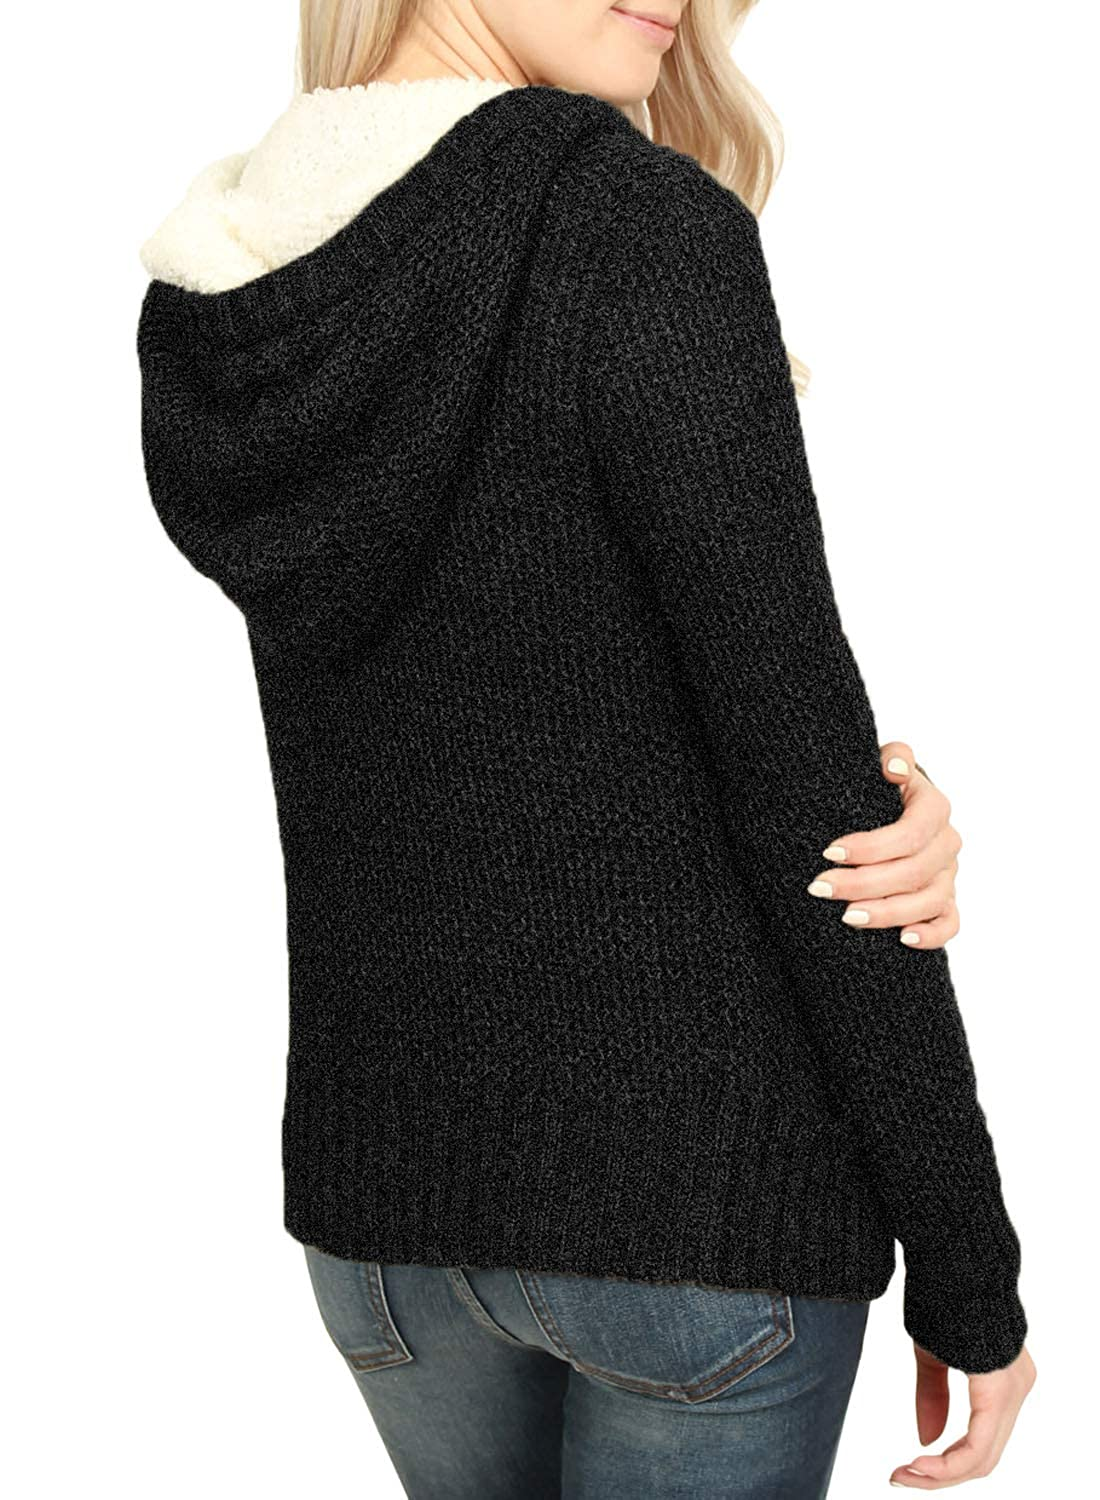 FIYOTE Womens Hooded Cardigans Button Down Cable Knit Sweater Coat Outwear with Pockets